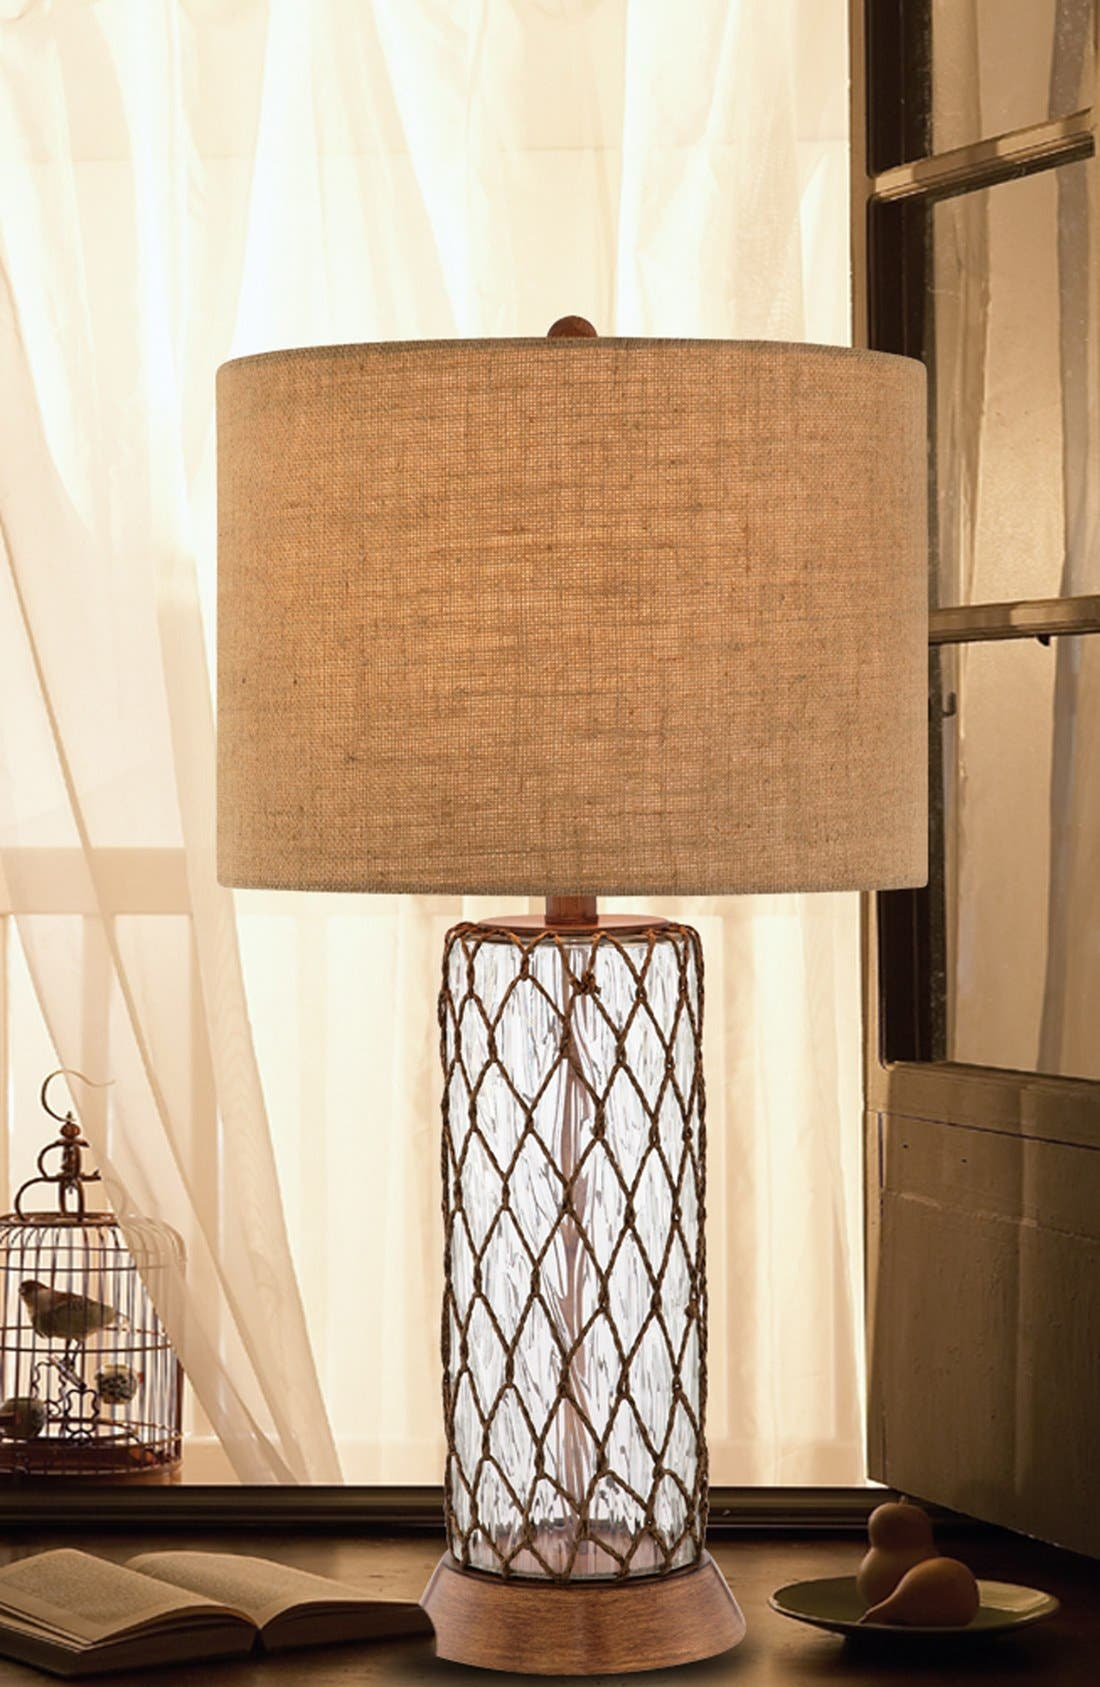 Clear Glass Table Lamp,                             Alternate thumbnail 2, color,                             Clear Glass/ Bronze Finish